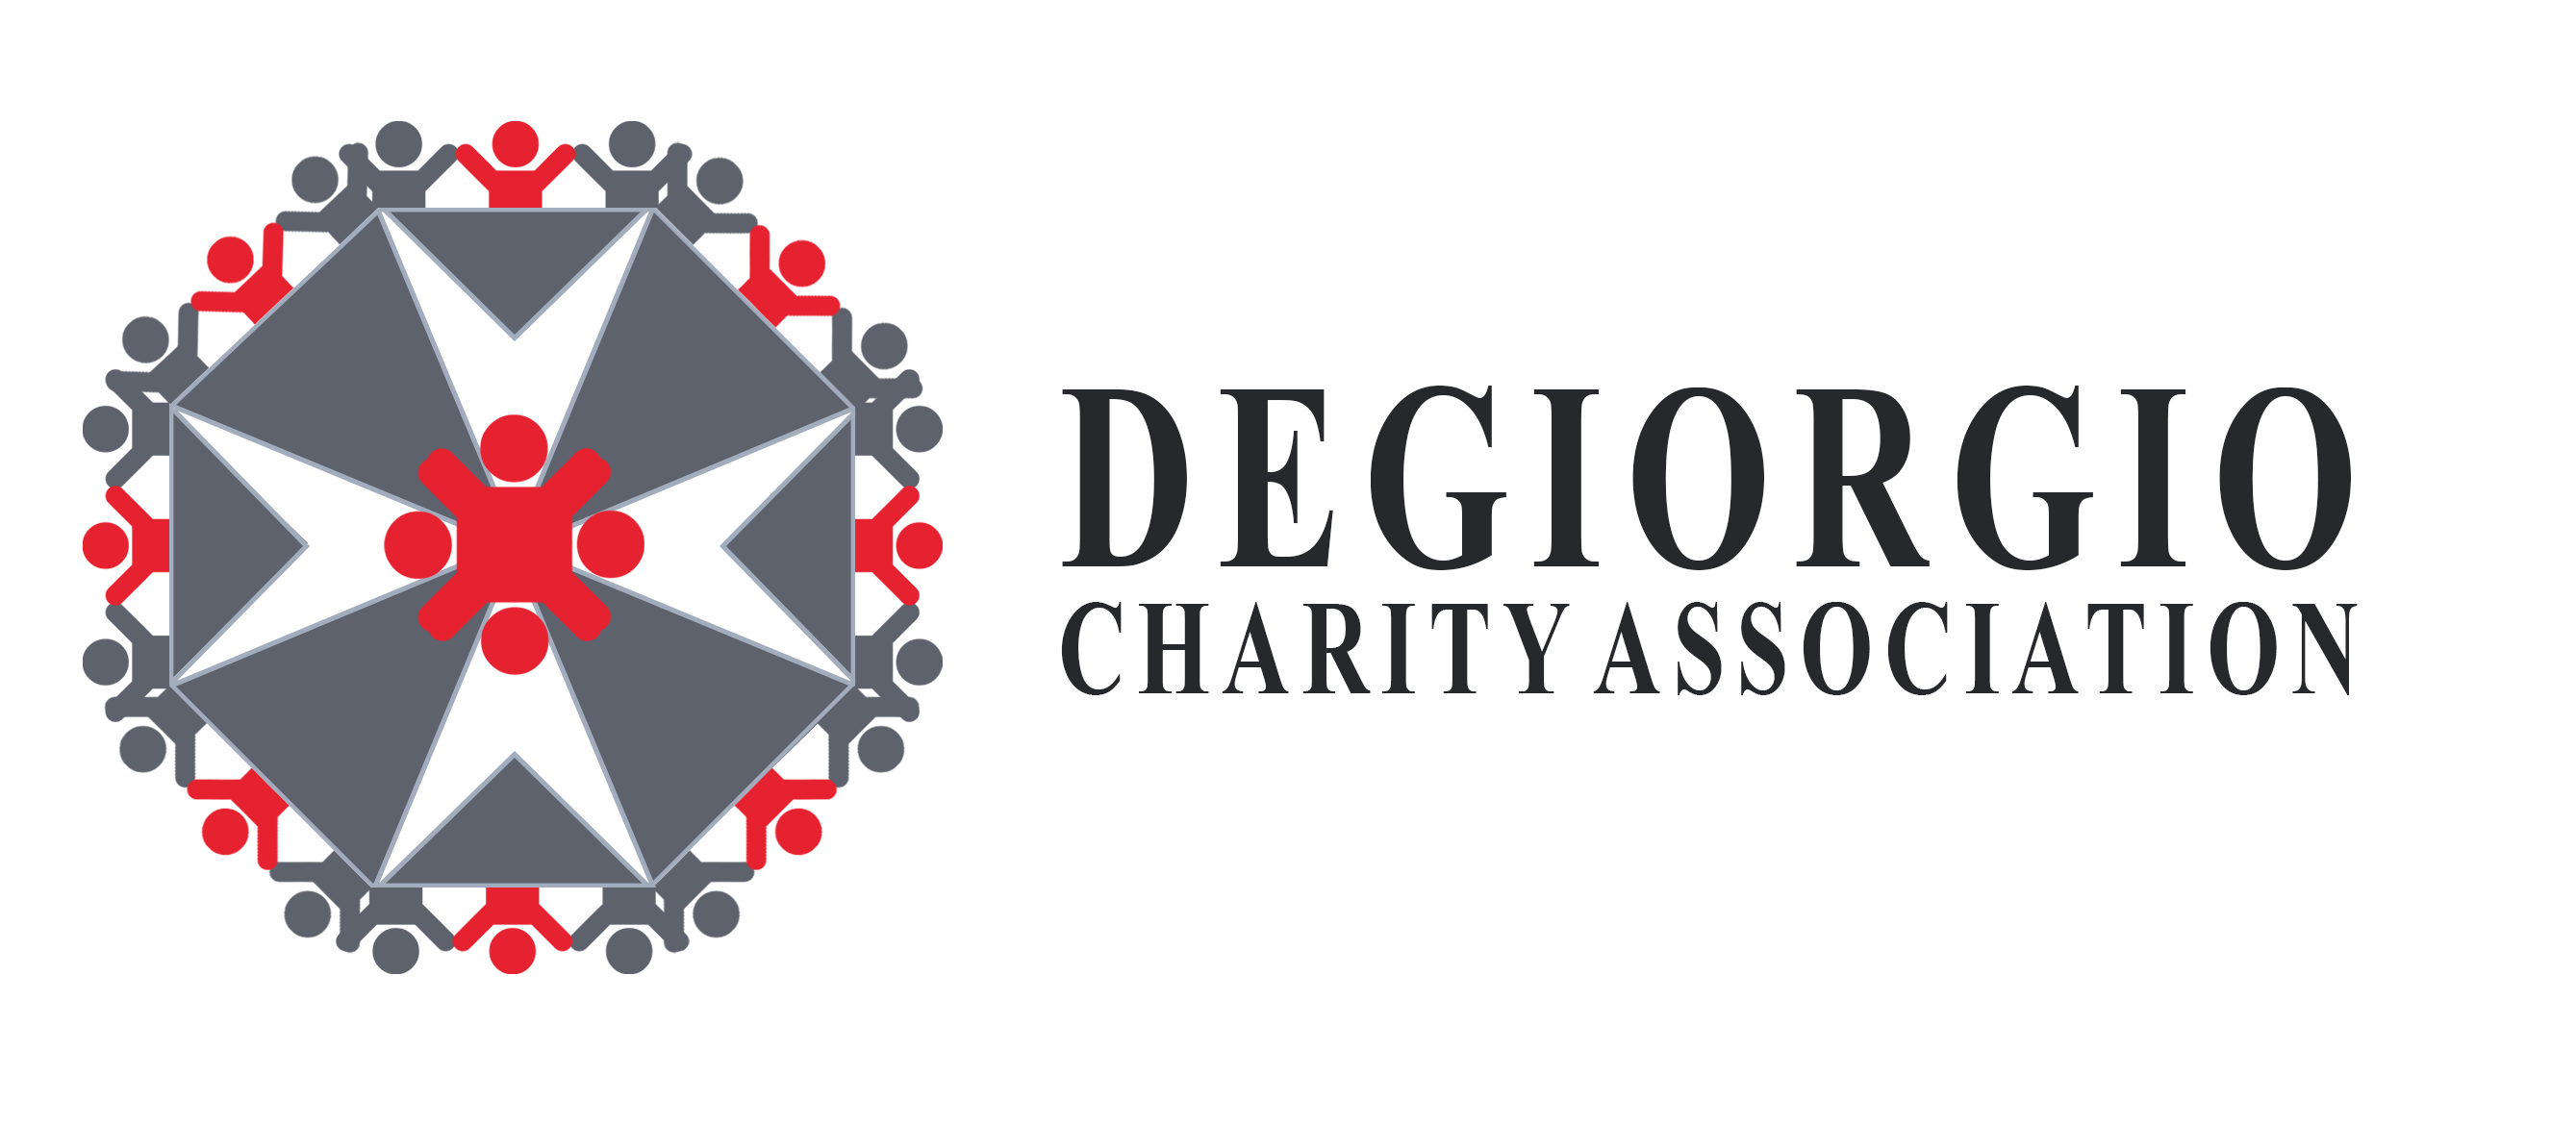 Degiorgio Charity Foundation